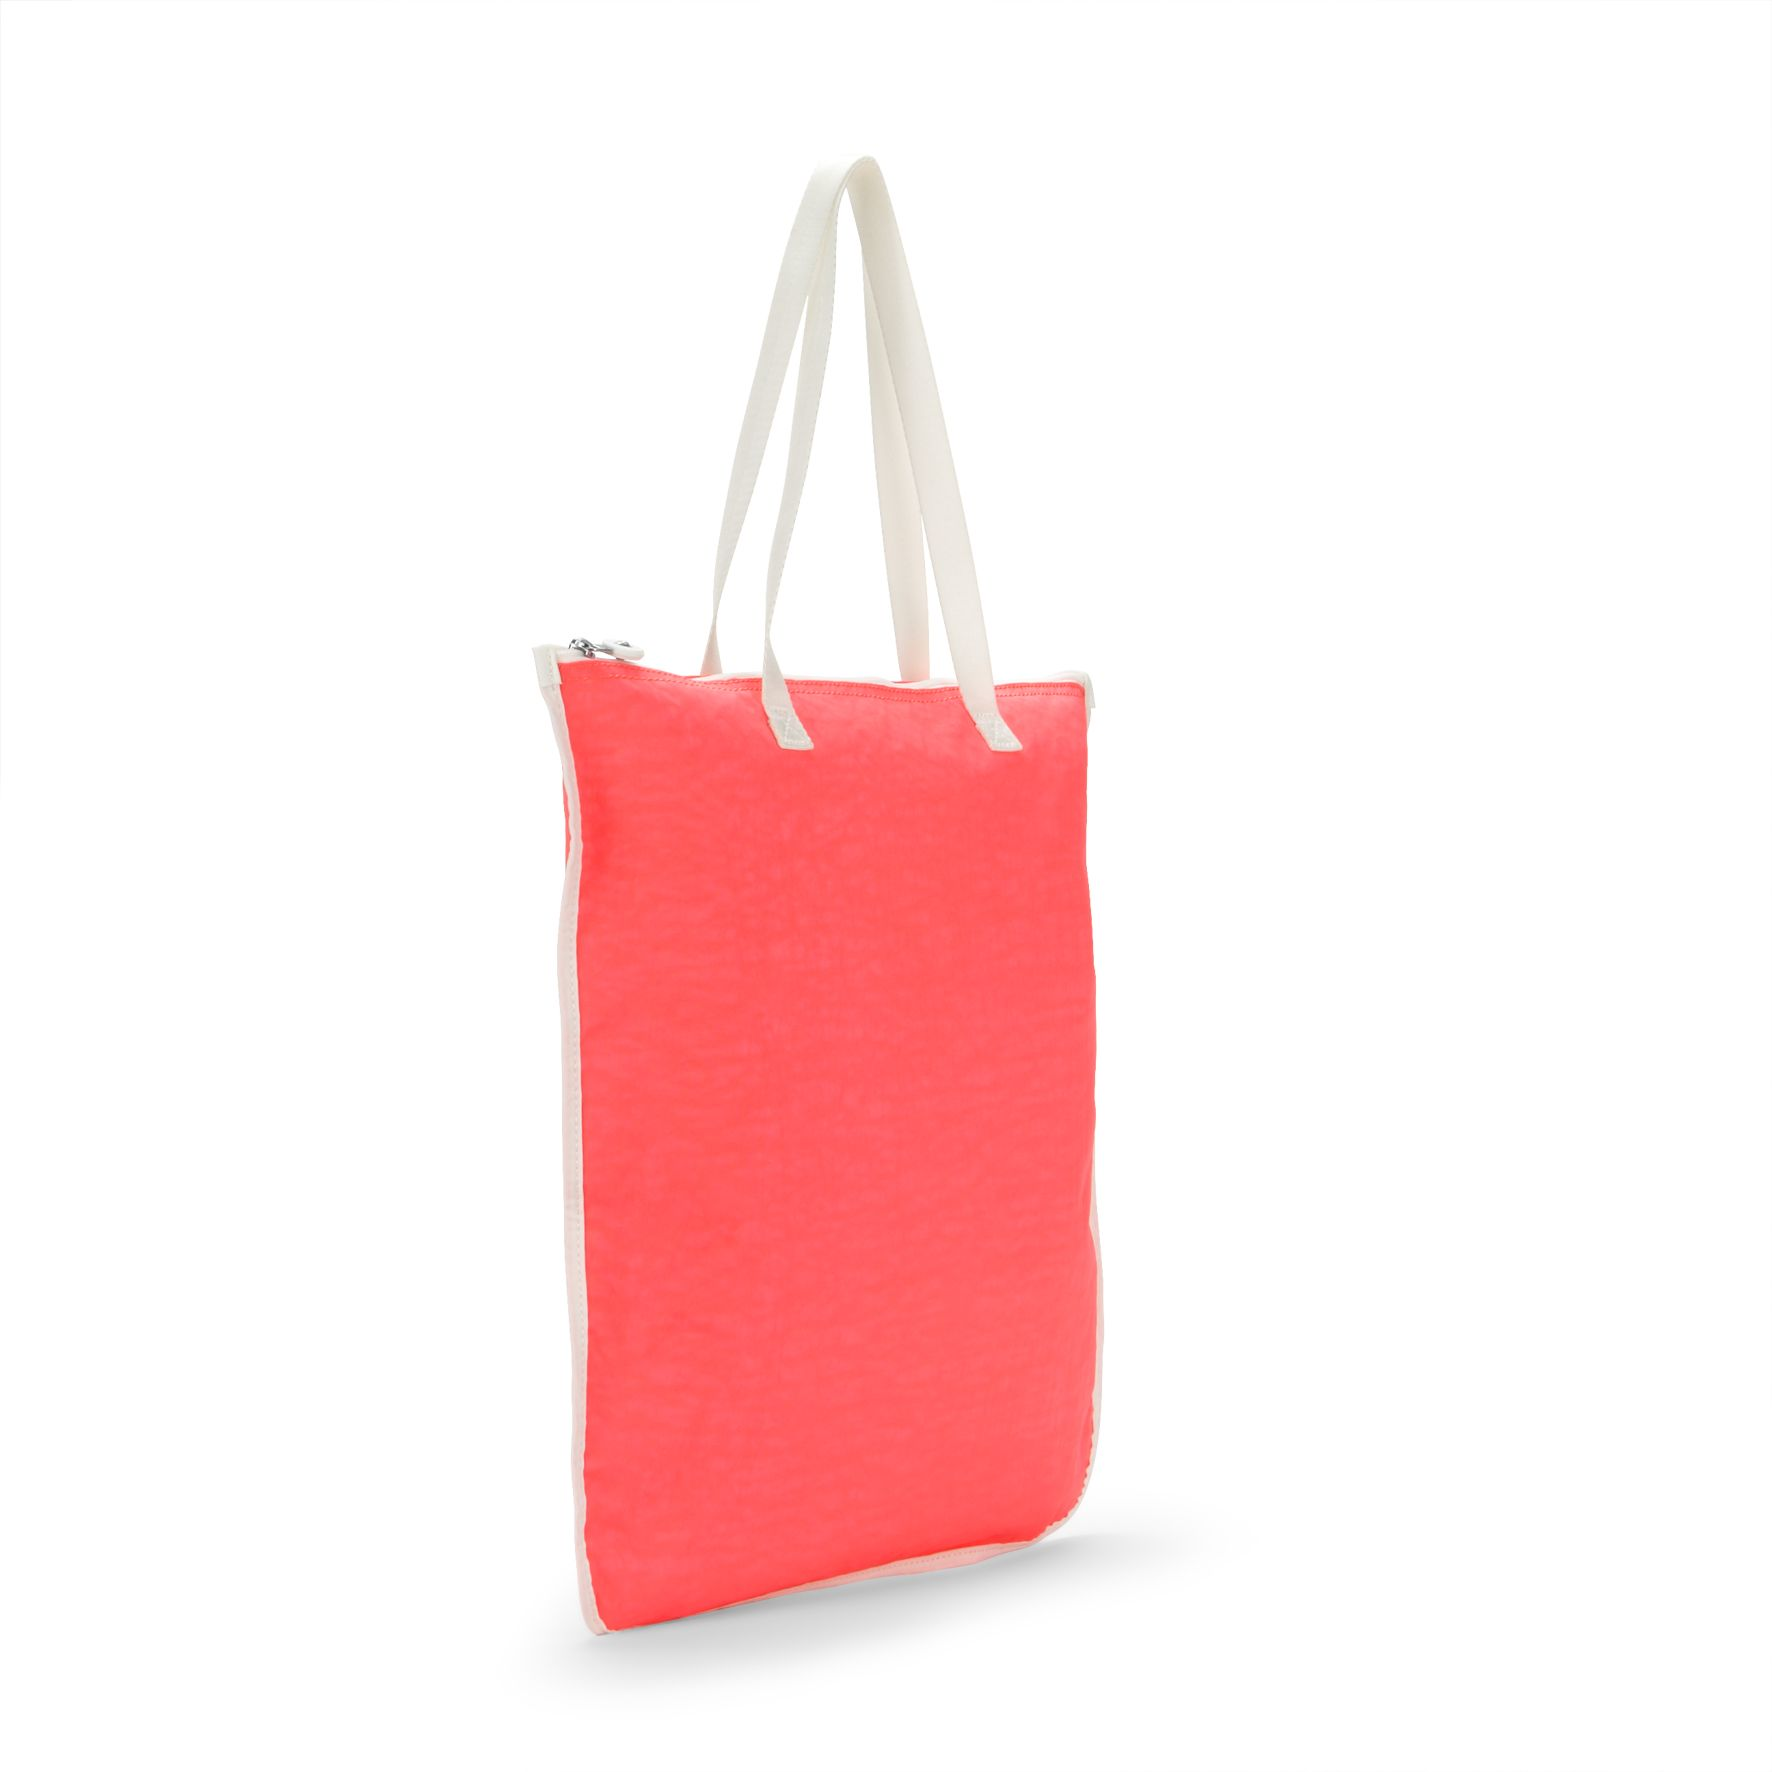 Hip hiphurray foldable tote bag